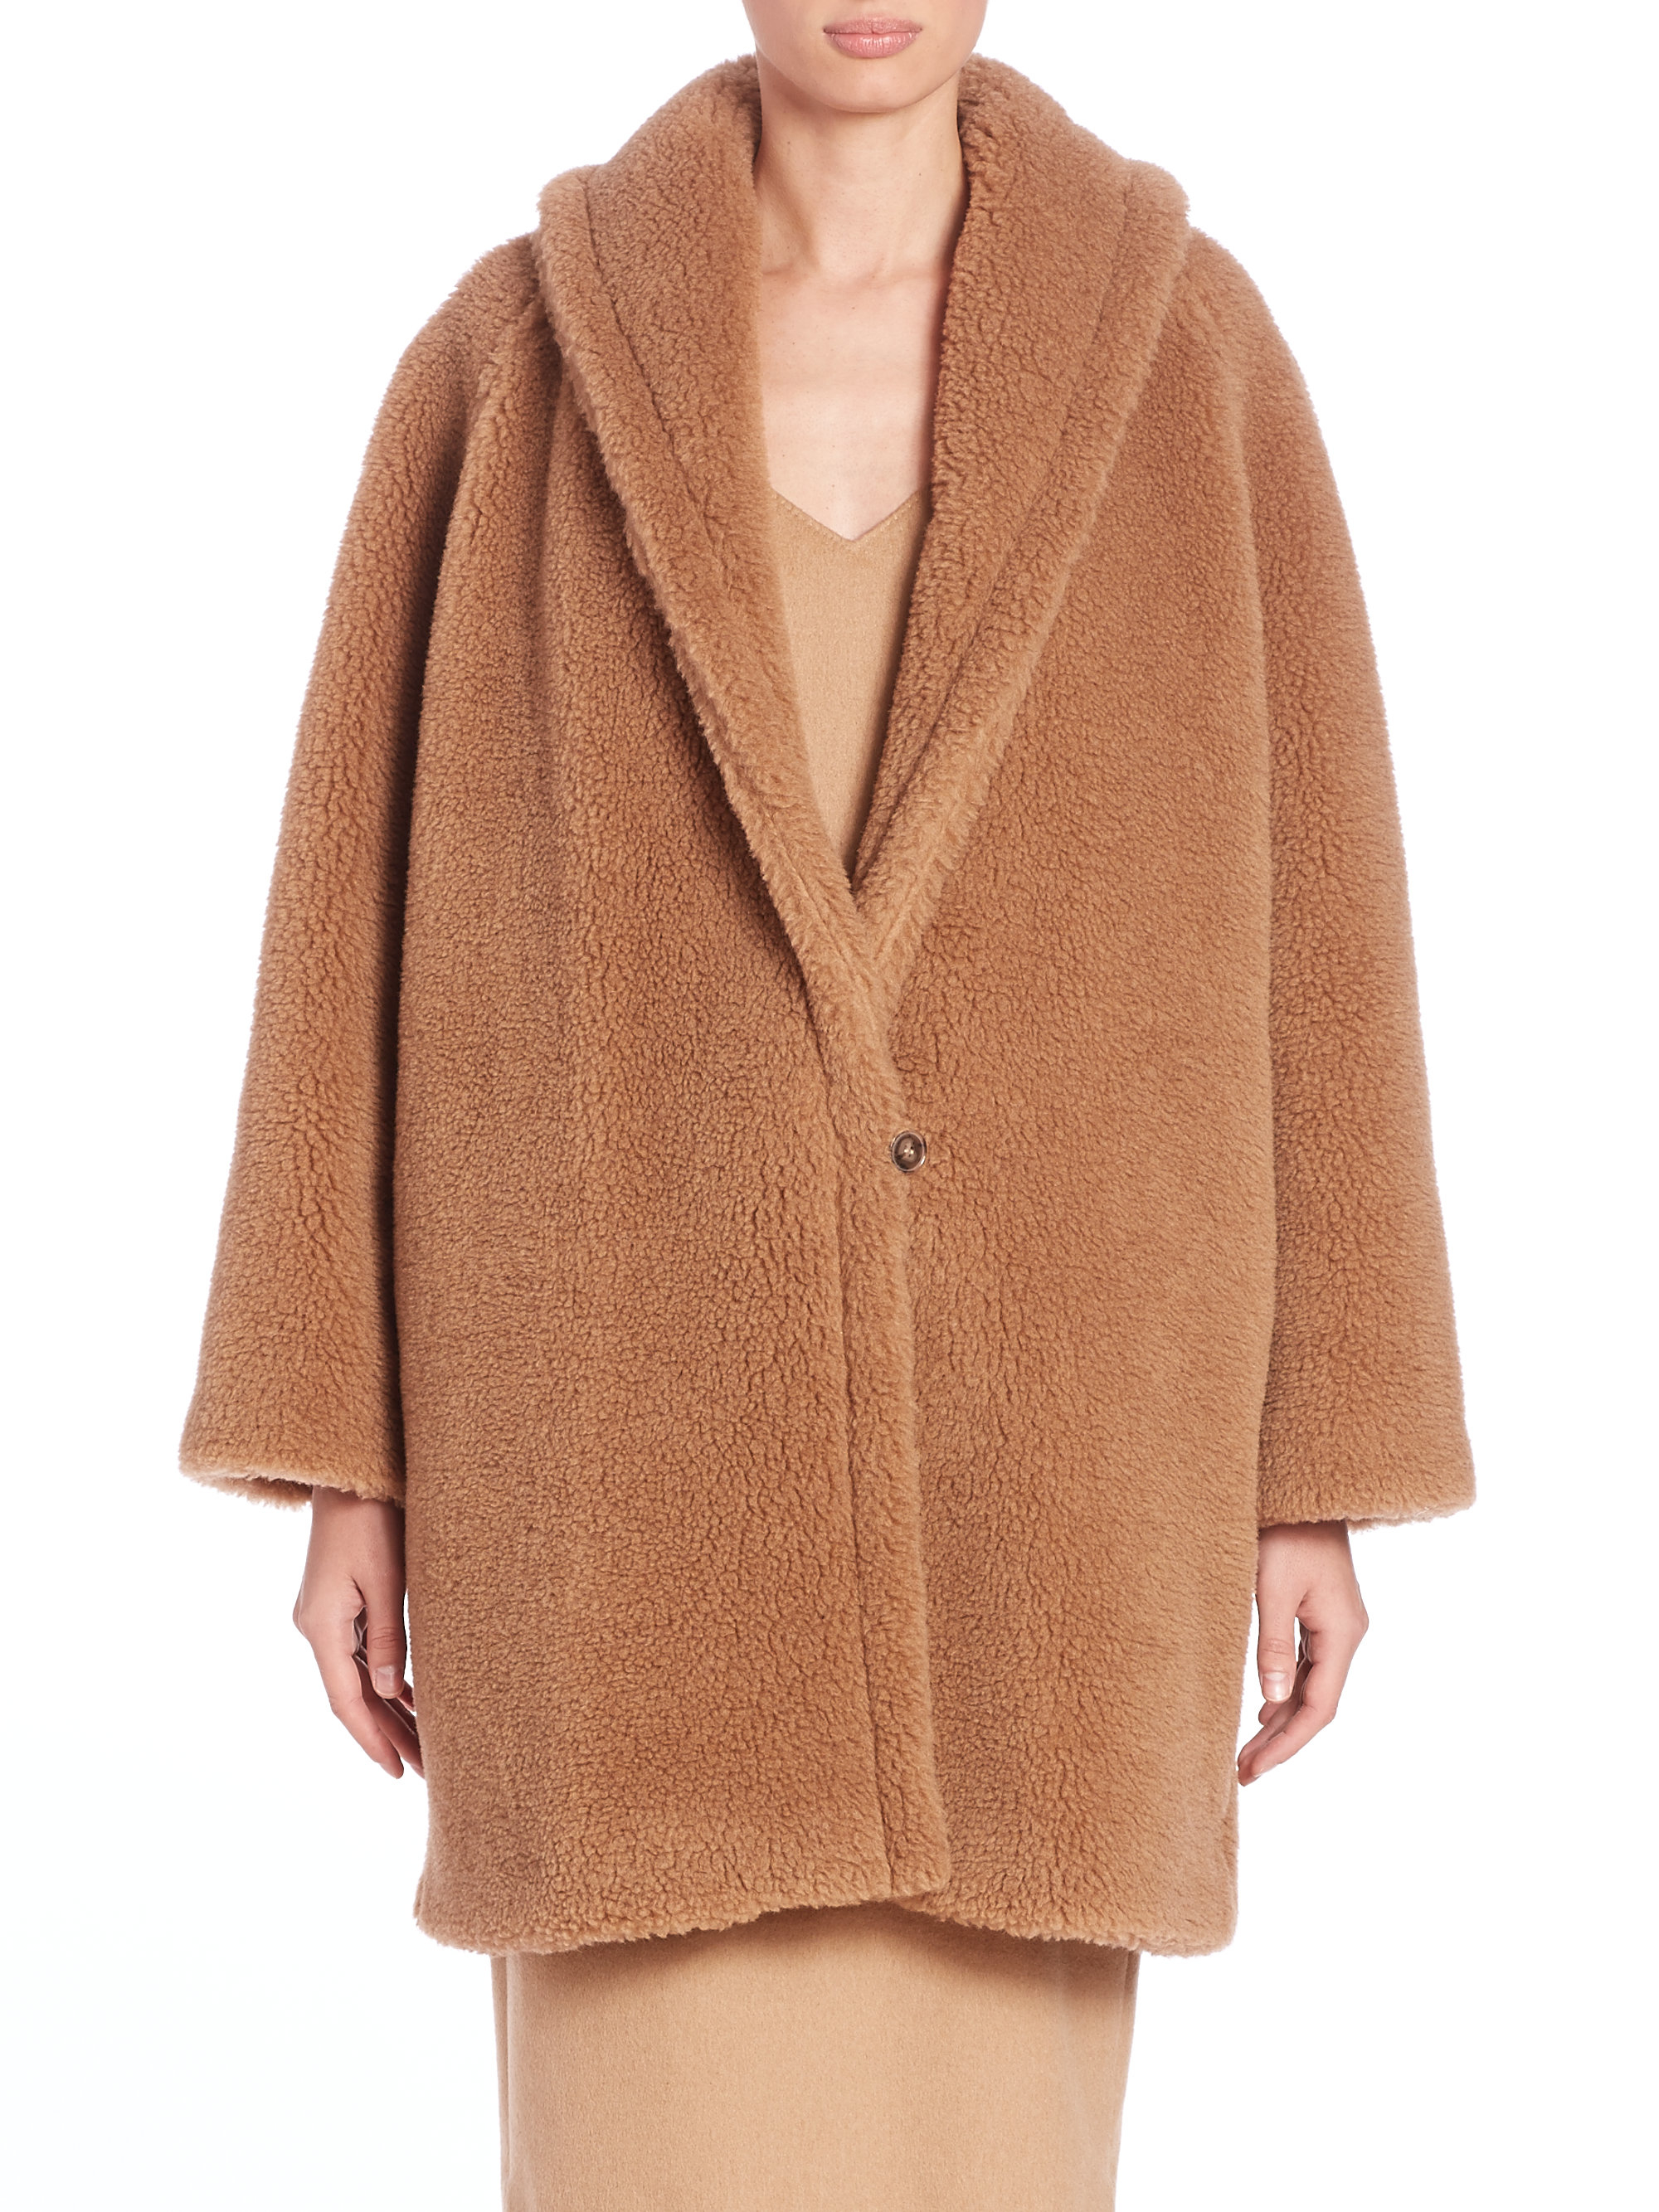 Max mara Armenia Faux Fur Teddy Coat in Brown | Lyst